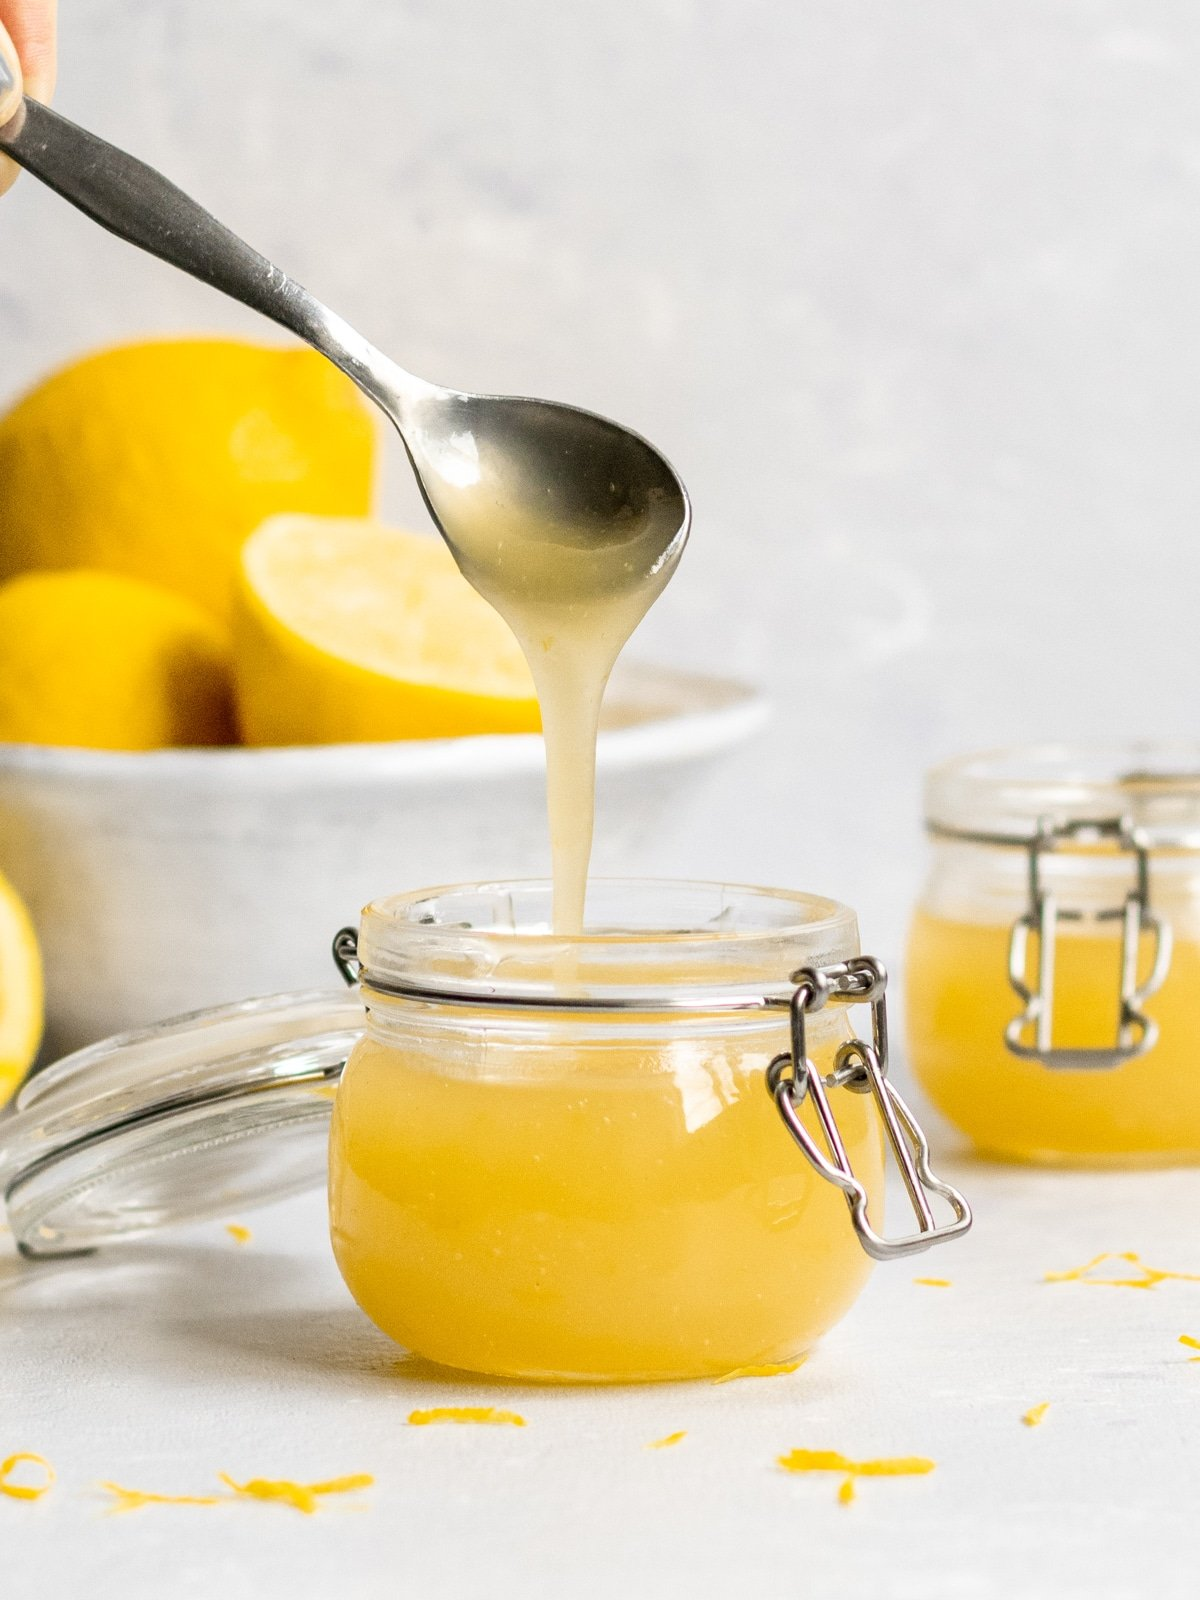 lemon curd in a container being drizzled out with a spoon